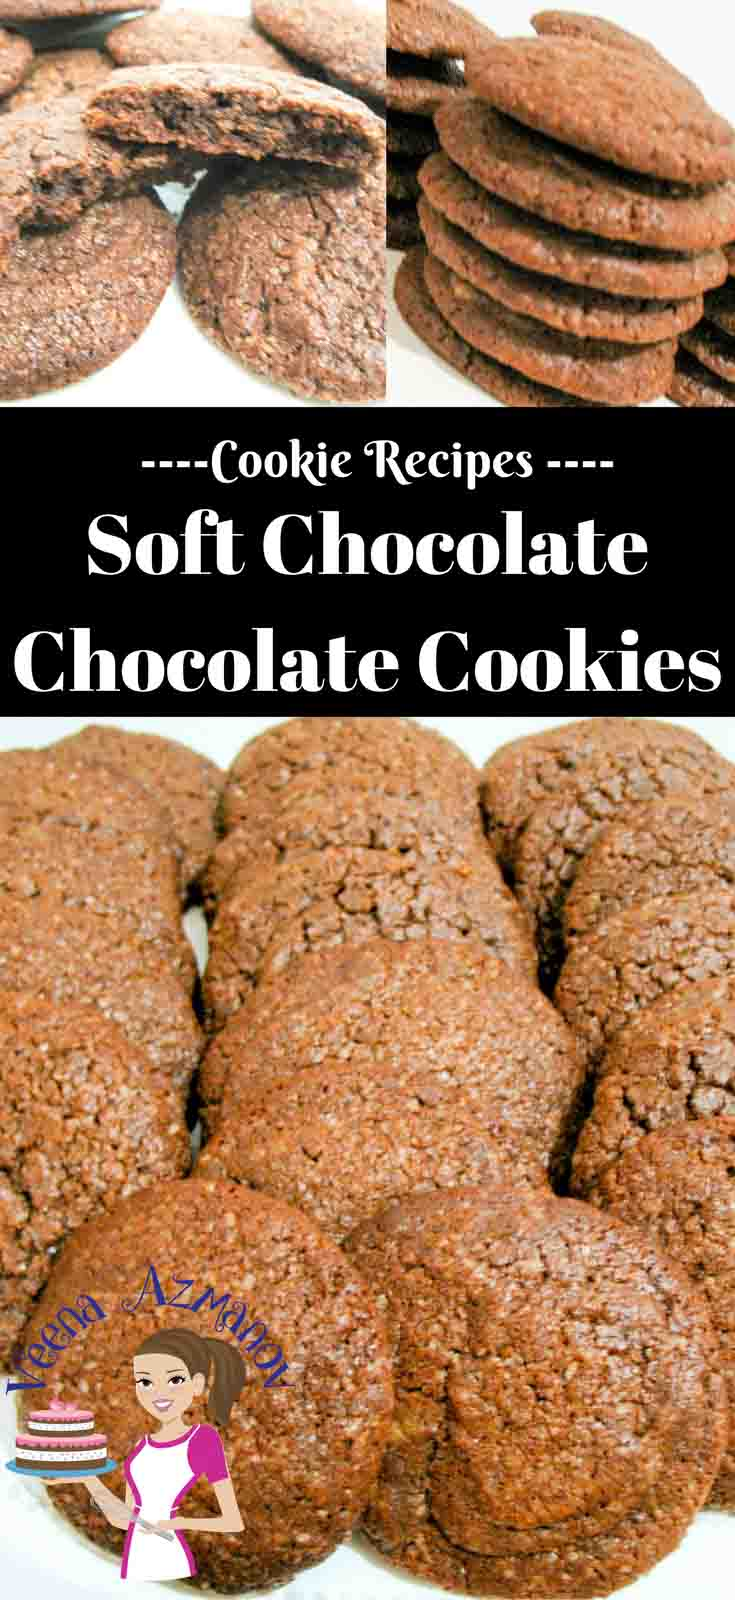 These soft chocolate chocolate cookies made with real melted chocolate are soft inside and melt in the mouth. They make a perfect treat with a cup of tea or sandwiched with some ice cream in between.